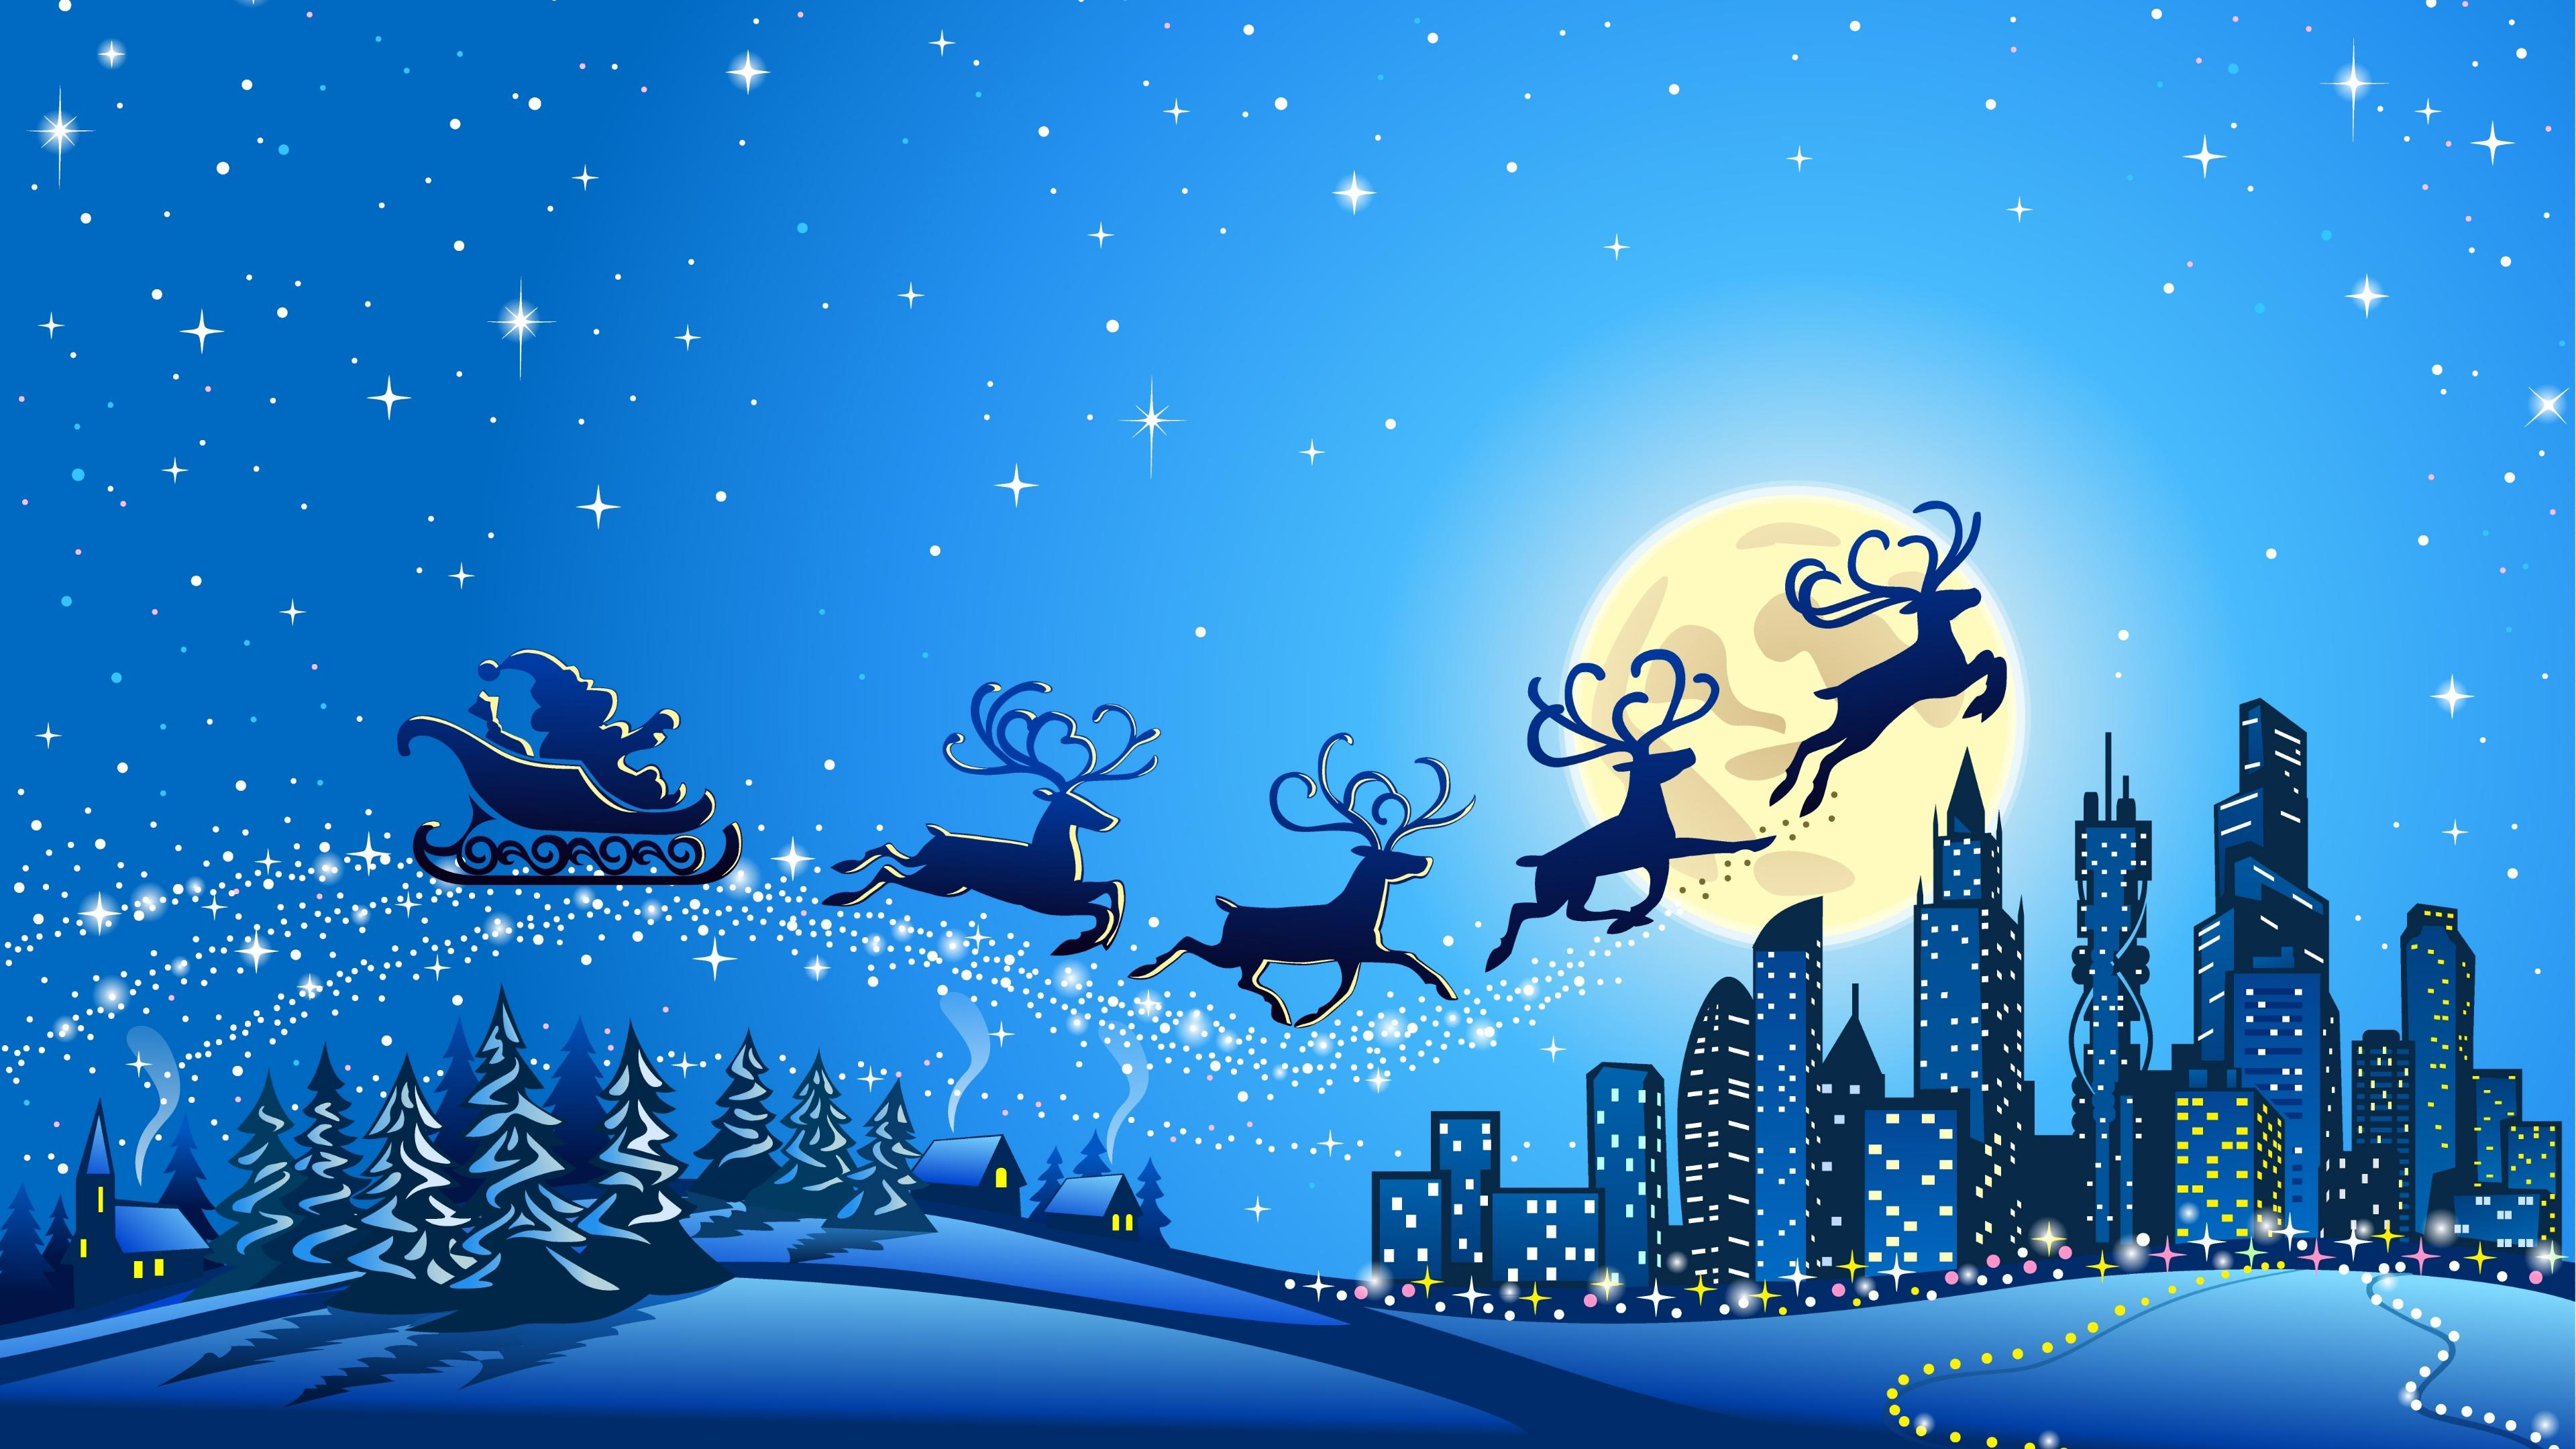 Snowy city image with sleigh and reindeer flying over